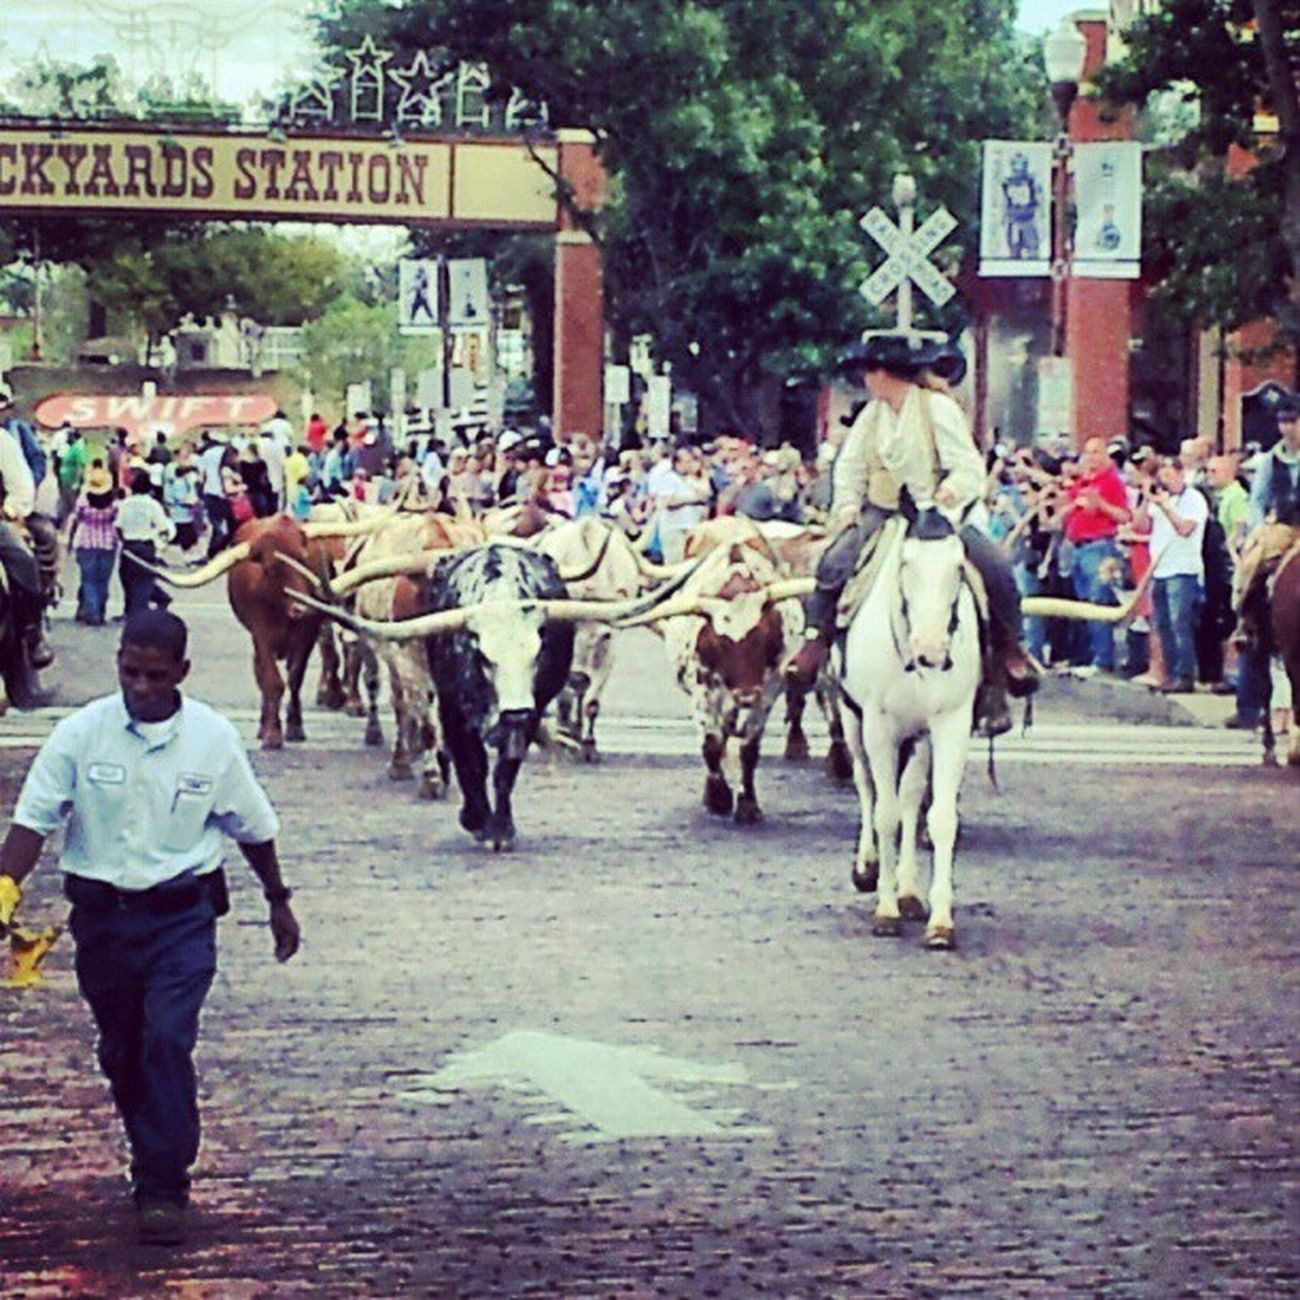 Got to see the Cattlerun at the Stockyards in Ftworth TX